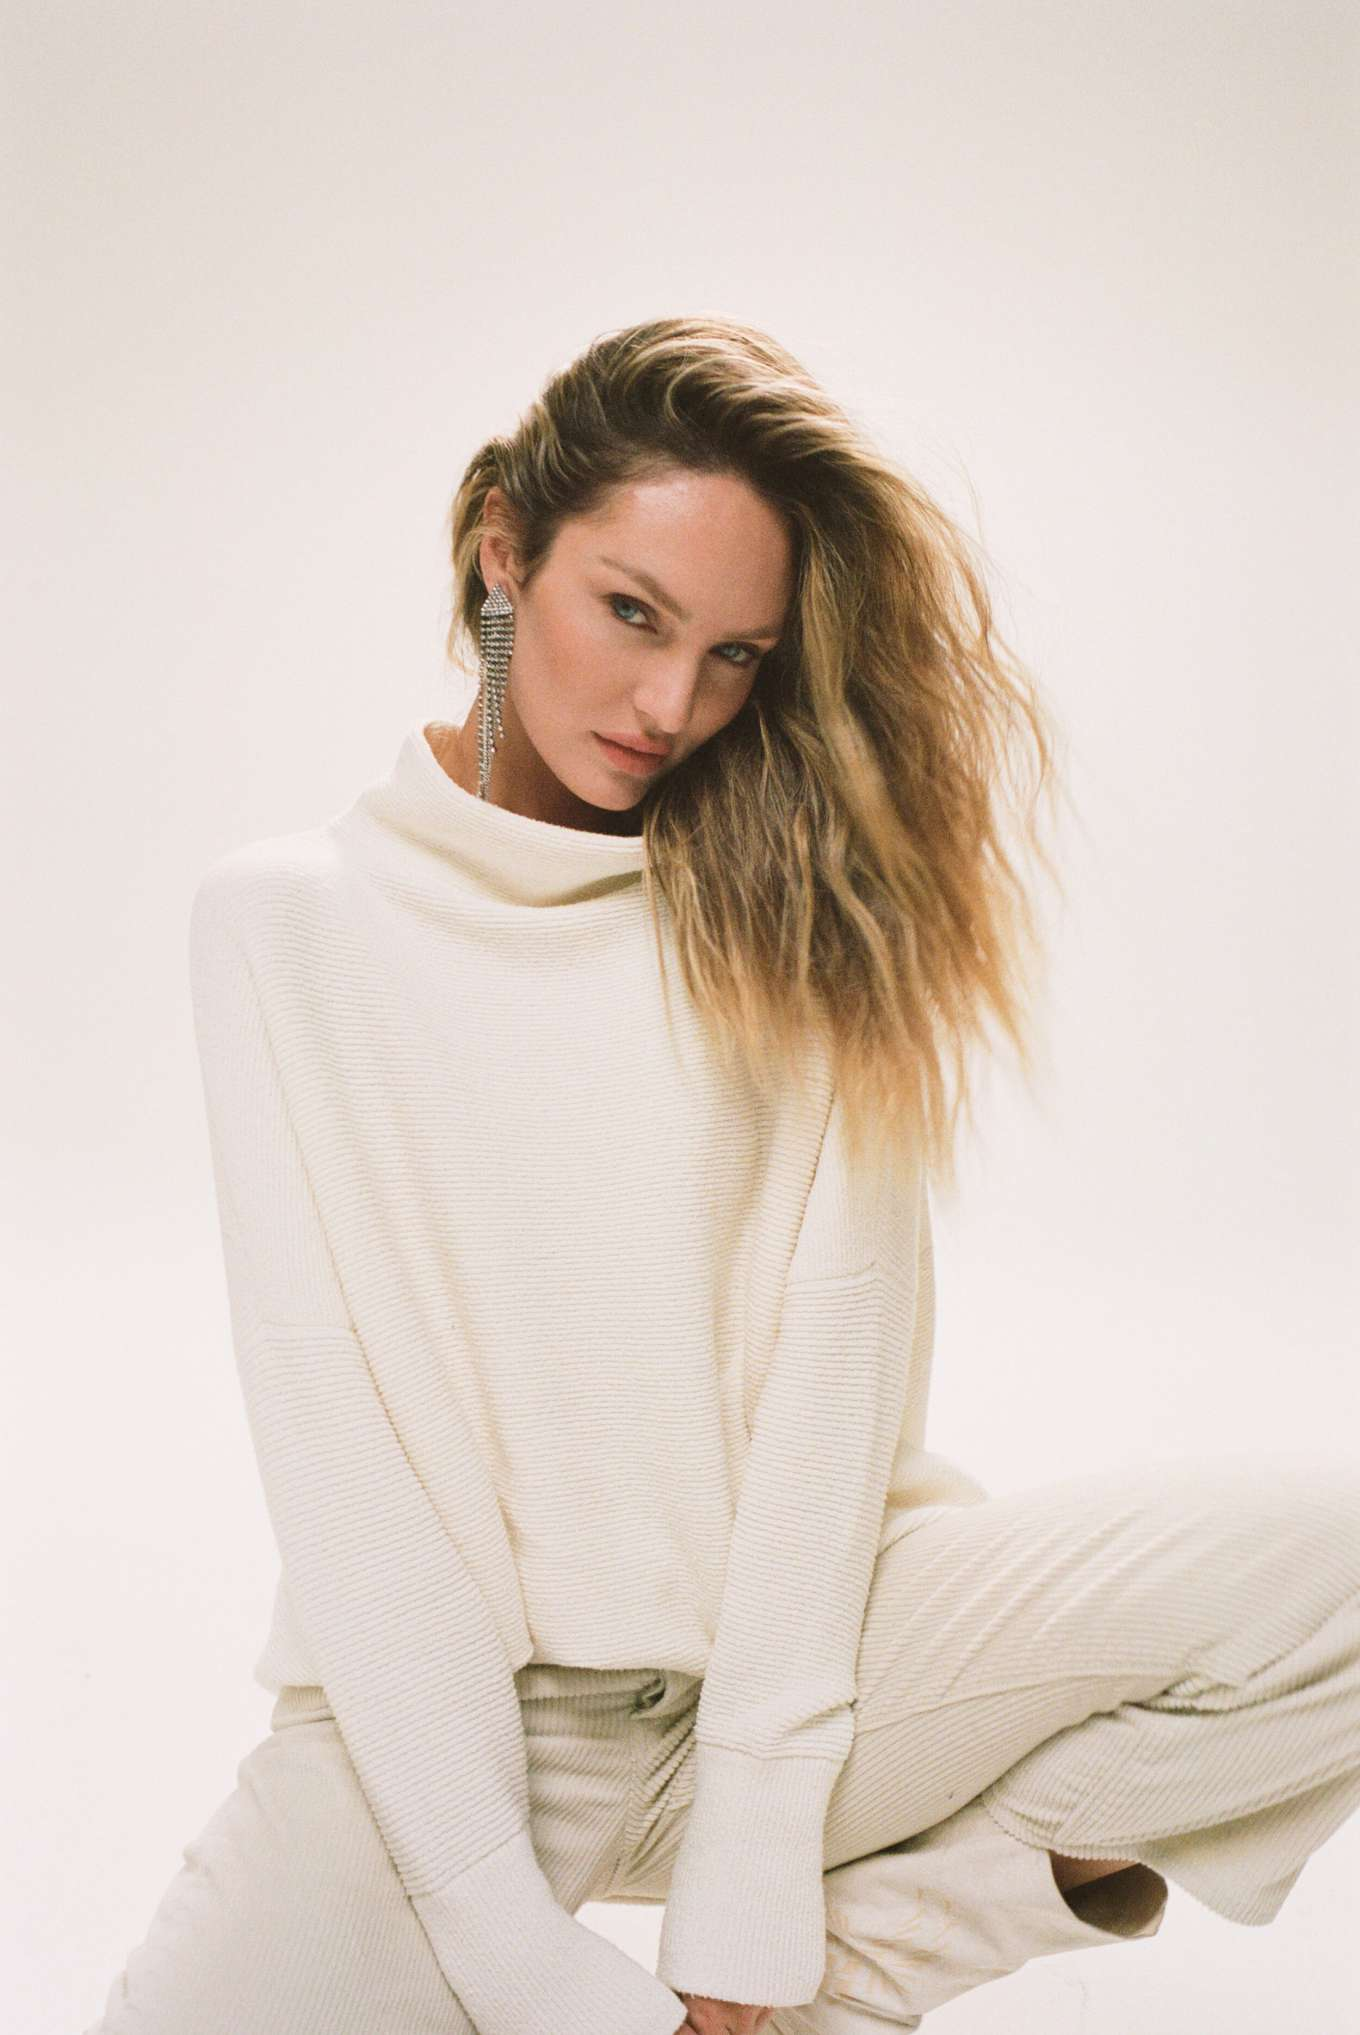 Candice Swanepoel 2019 : Candice Swanepoel for Free People Collection 2019-04